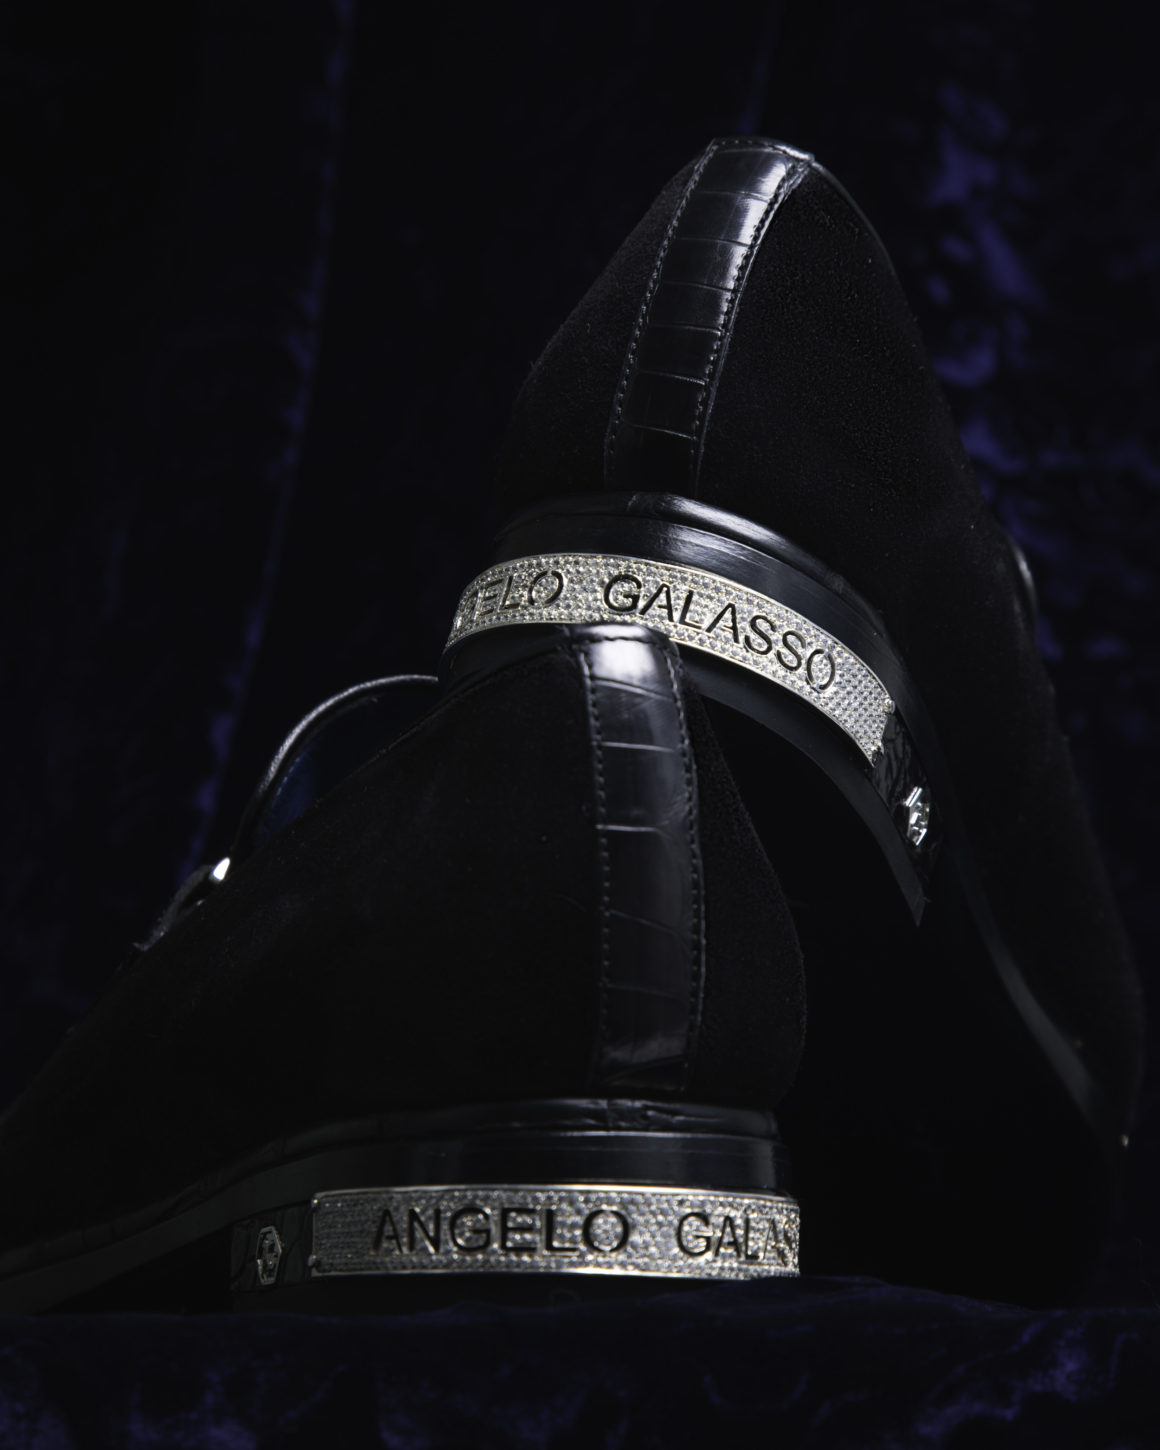 Angelo Galasso slip on loafers